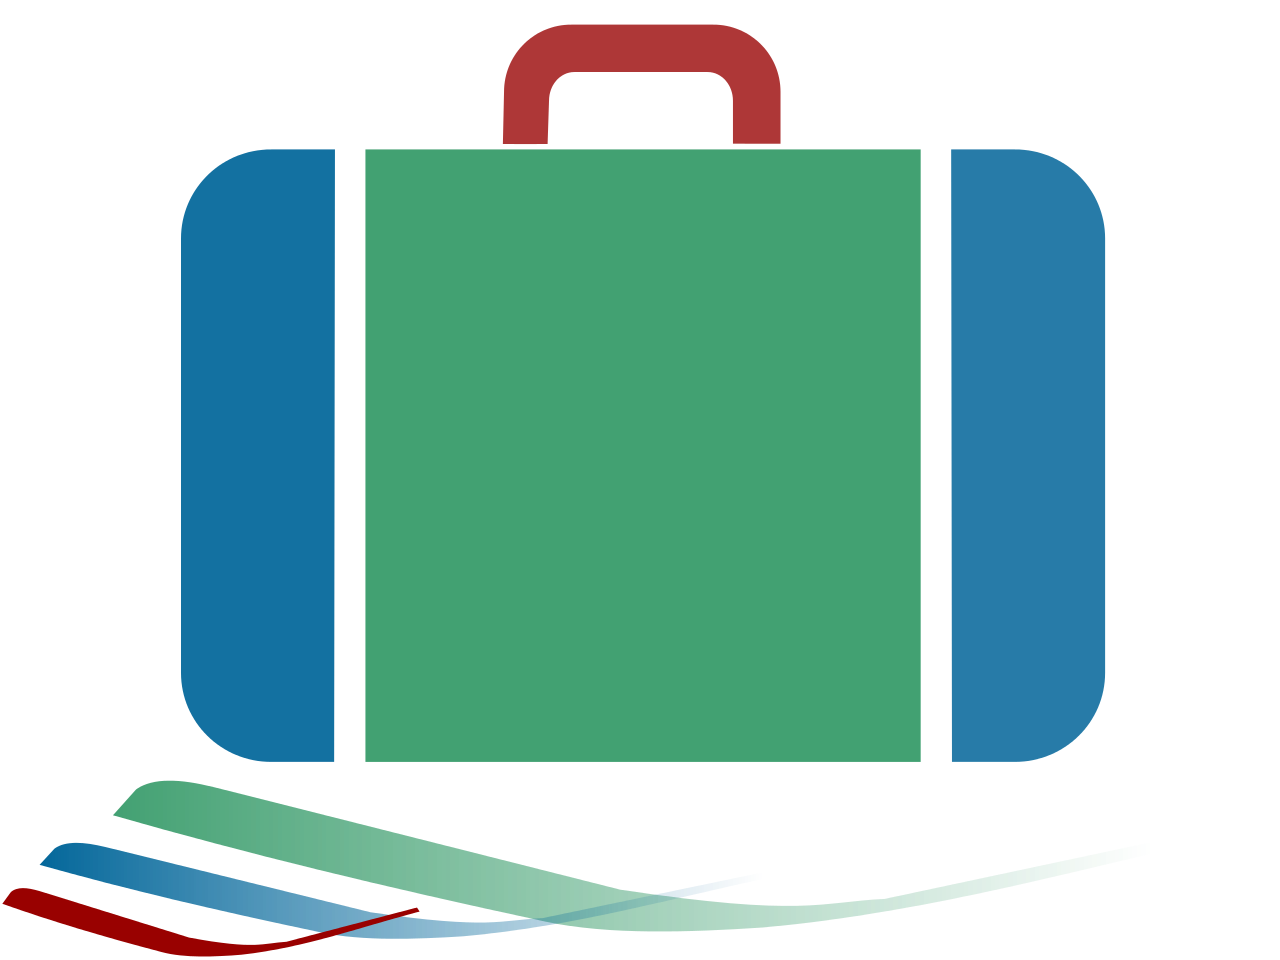 Luggage clipart green suitcase. File icon blue red